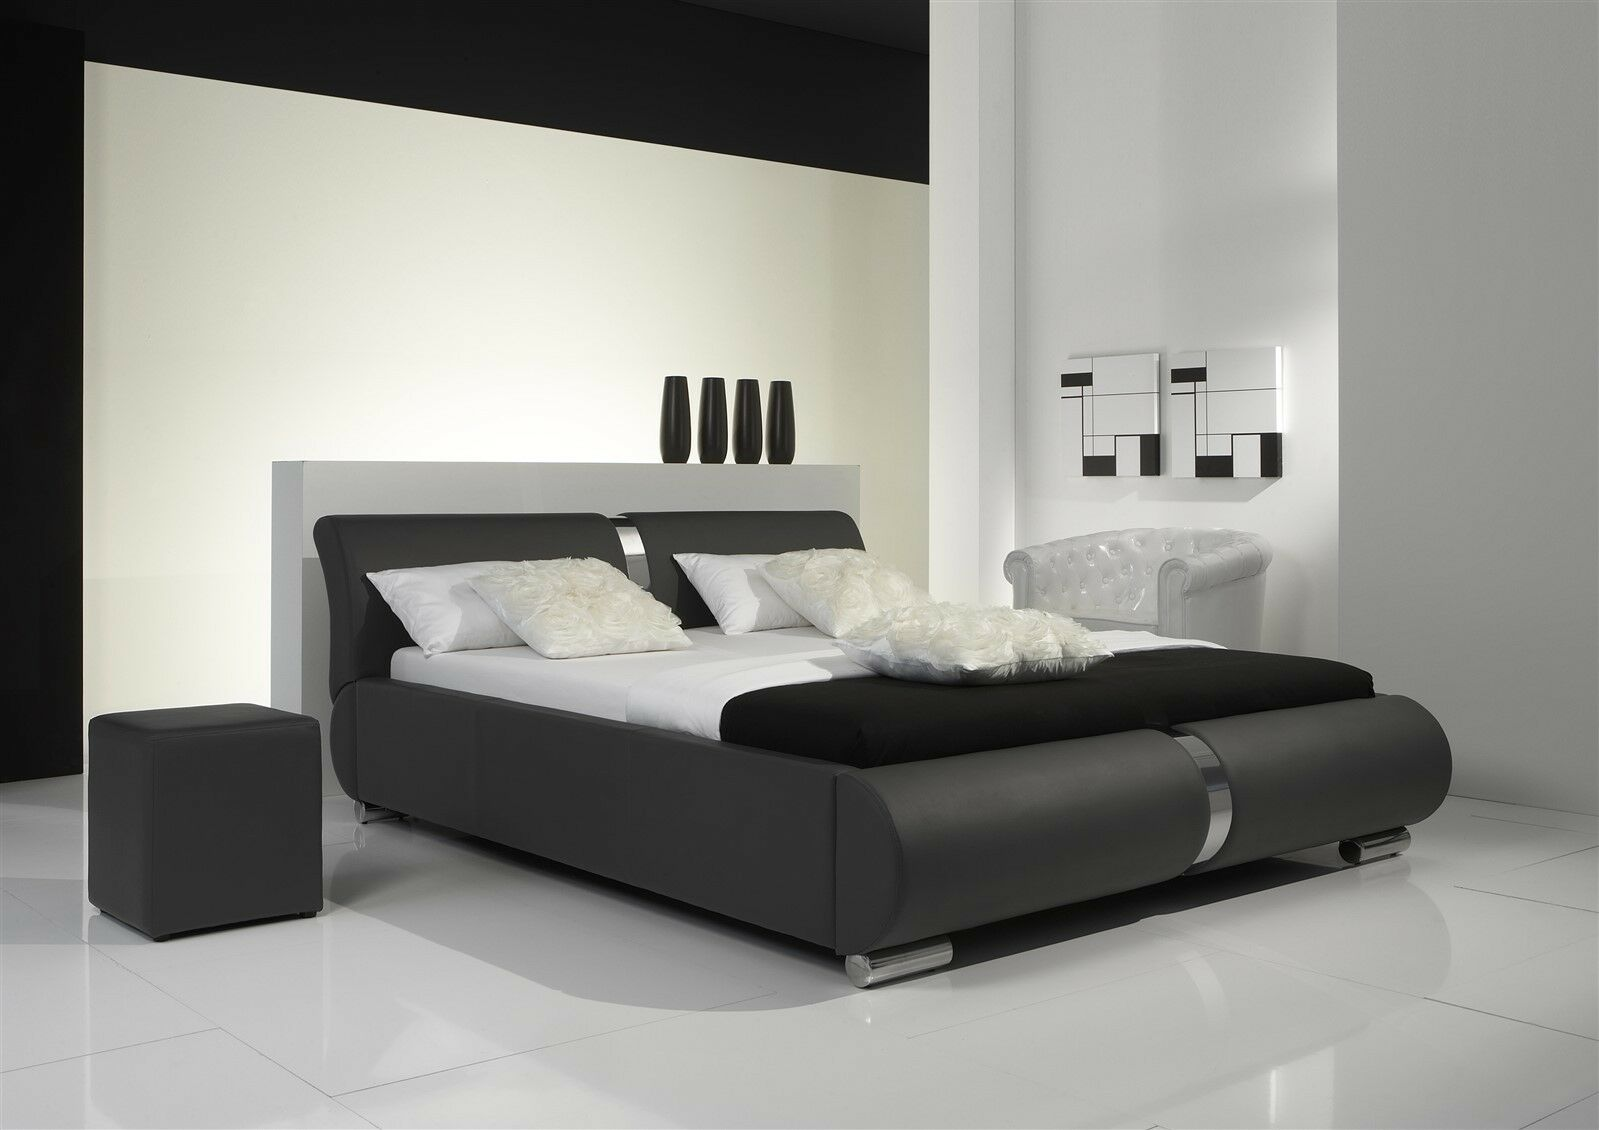 polsterbett bett doppelbett tagesbett dakar 160x200 cm grau eur 789 60 picclick at. Black Bedroom Furniture Sets. Home Design Ideas